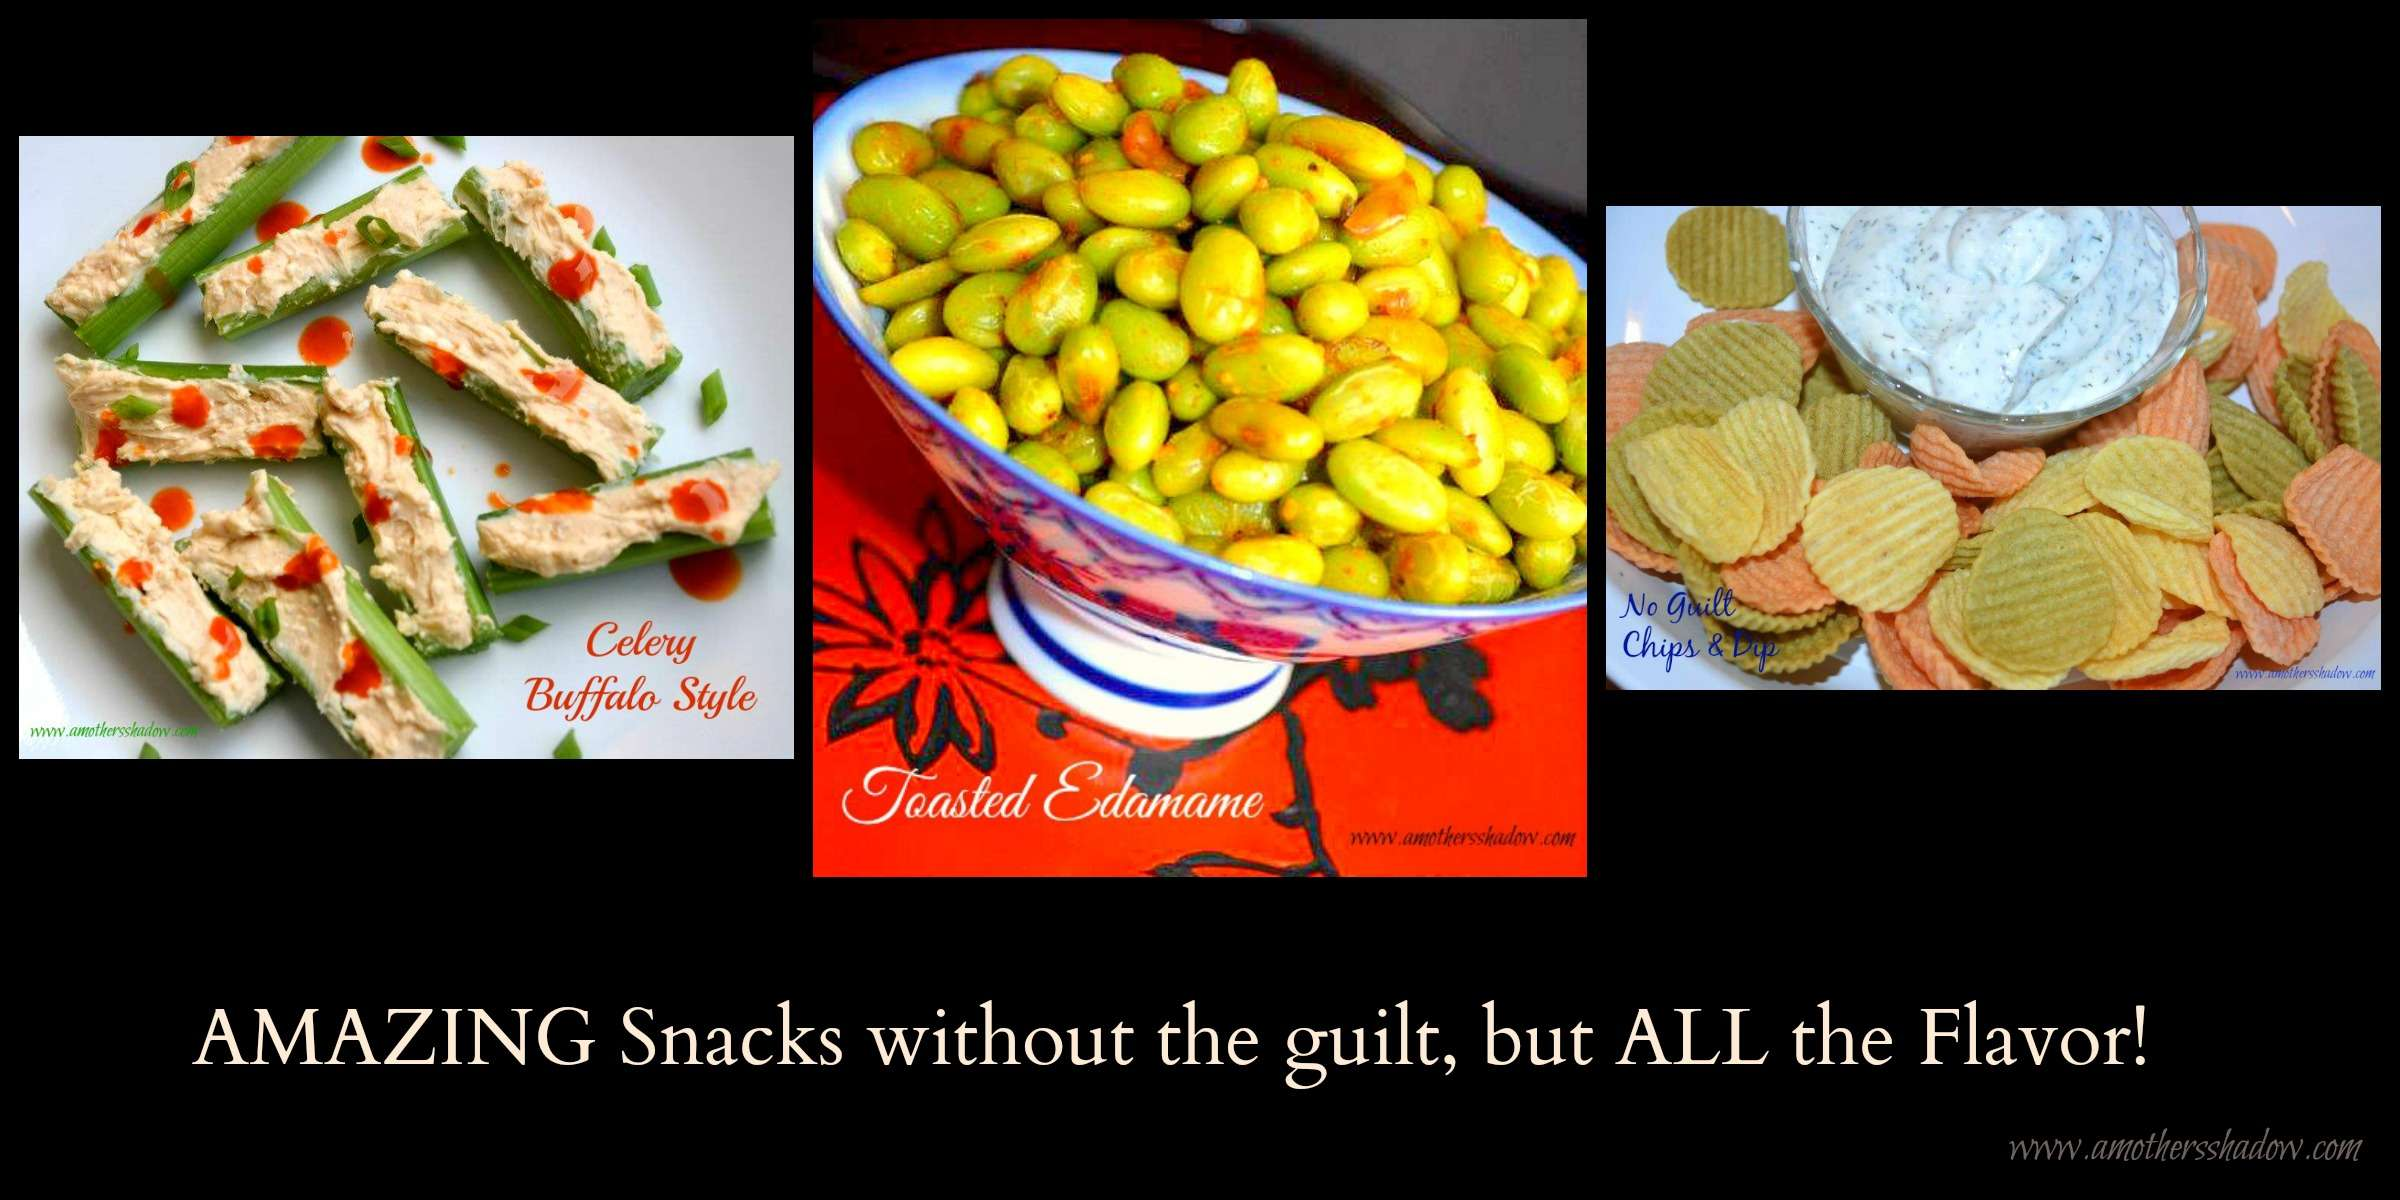 3 AMAZING Guilt-Free Low-Fat Appetizers or Snacks